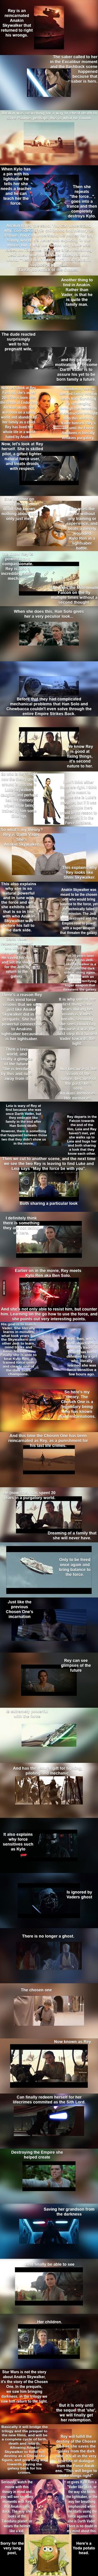 Ever since the release of Star Wars: The Force Awakens, fans of the saga can't stop discussing theories on Rey's true identity. Who are her true parents? How did she end up in Jakku? A fan from 9gag posted his interesting theory that claims Rey is the reincarnated Anakin Skywalker. Check it out: I've read more ridiculous theories than this, so I have to applaud this guy's efforts for coming up with this theory. We've also seen what might be Darth Vader